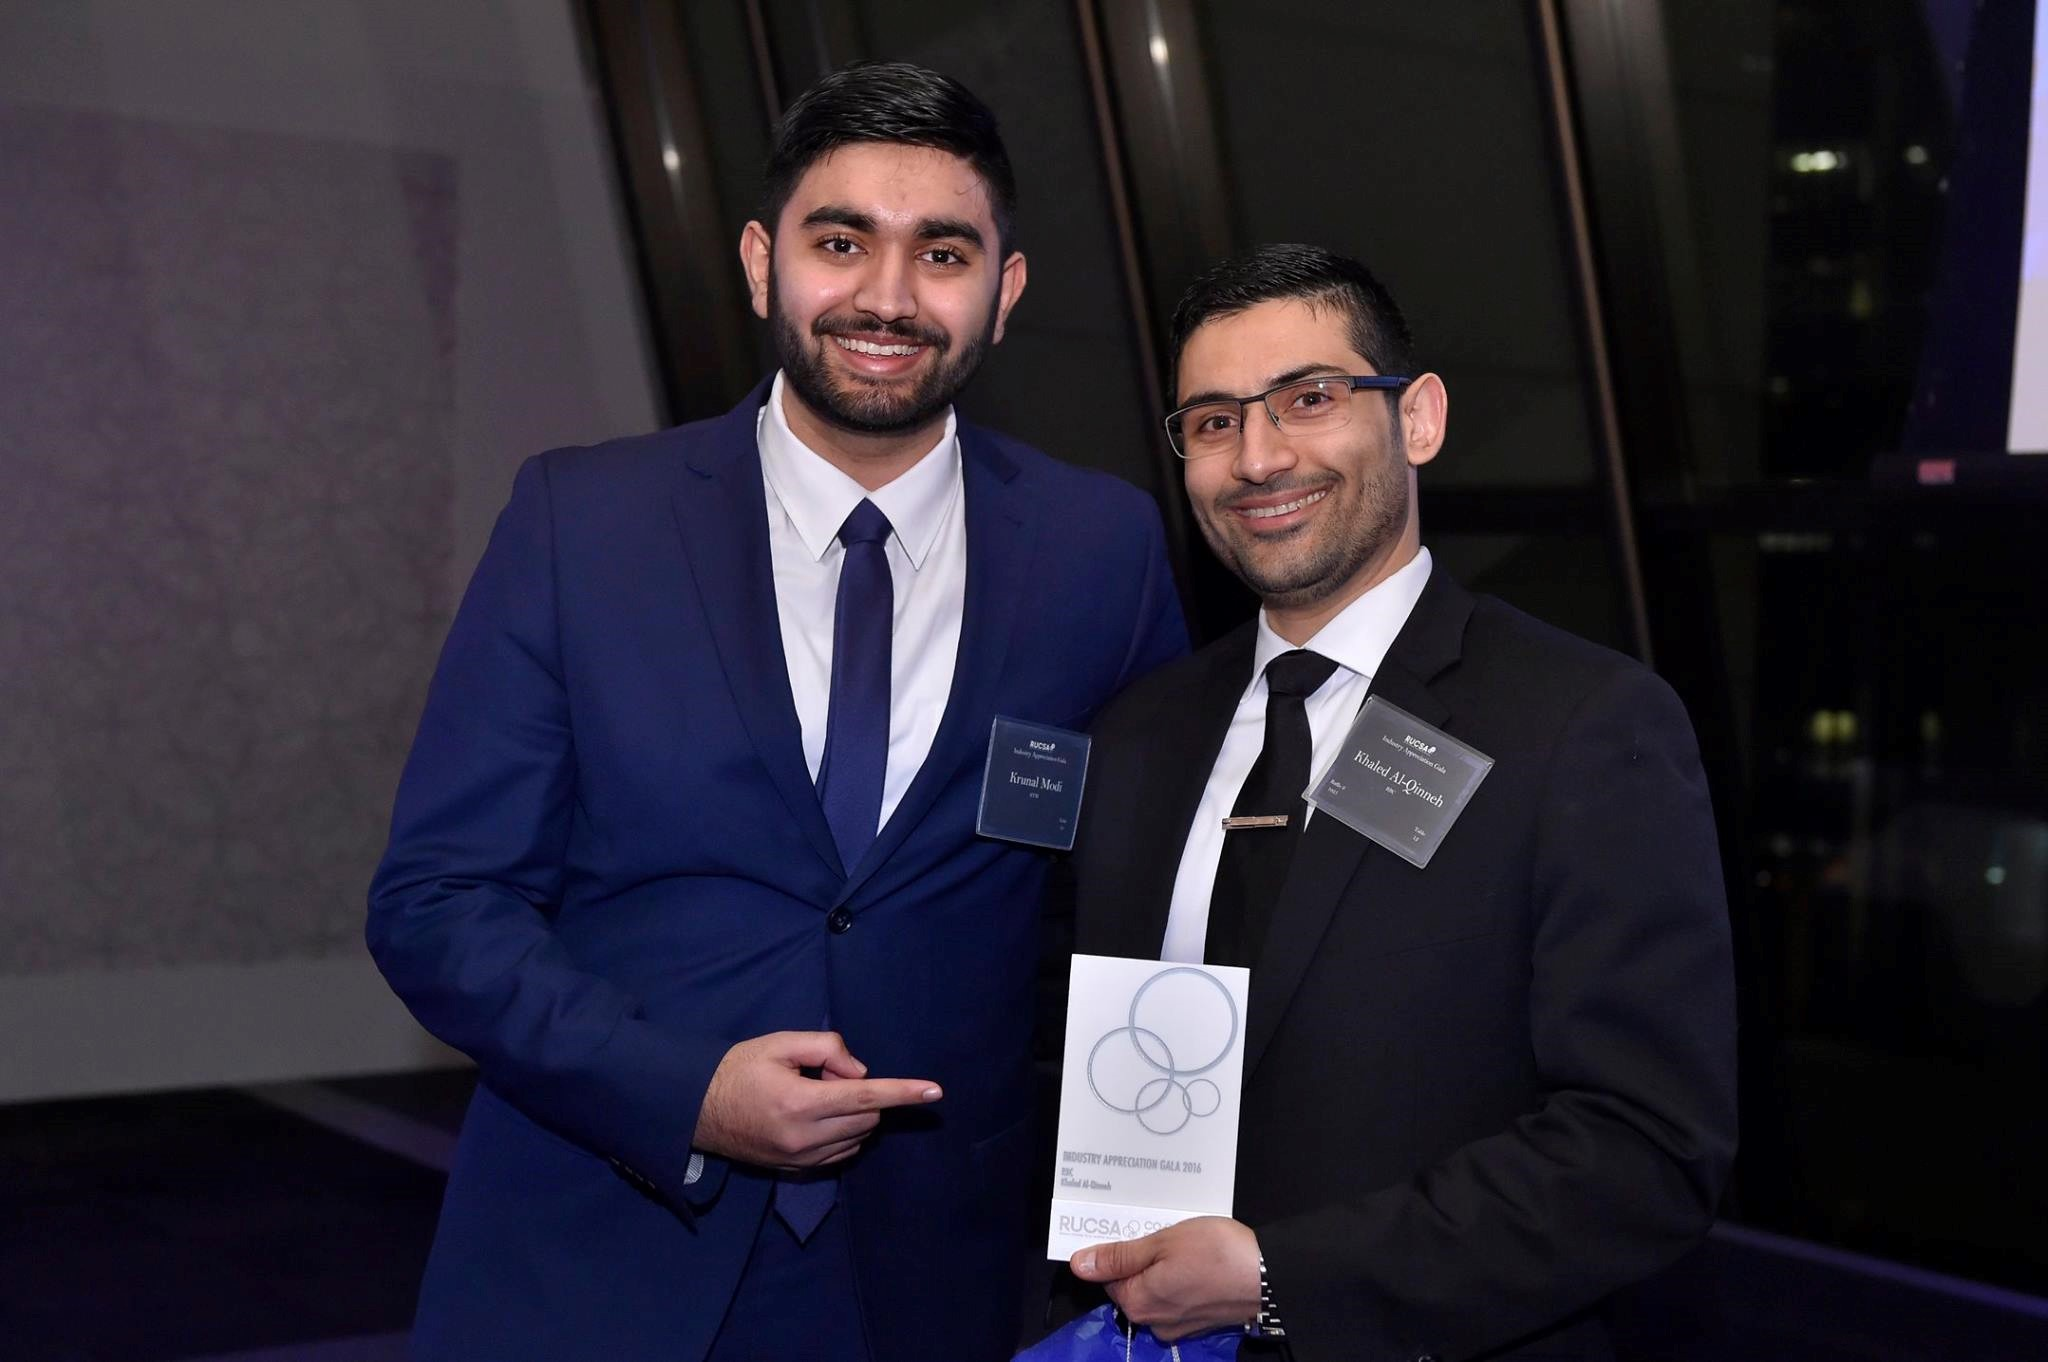 3rd year co-op student Krunal Modi with his manager Khaled Al-Qinneh from RBC.